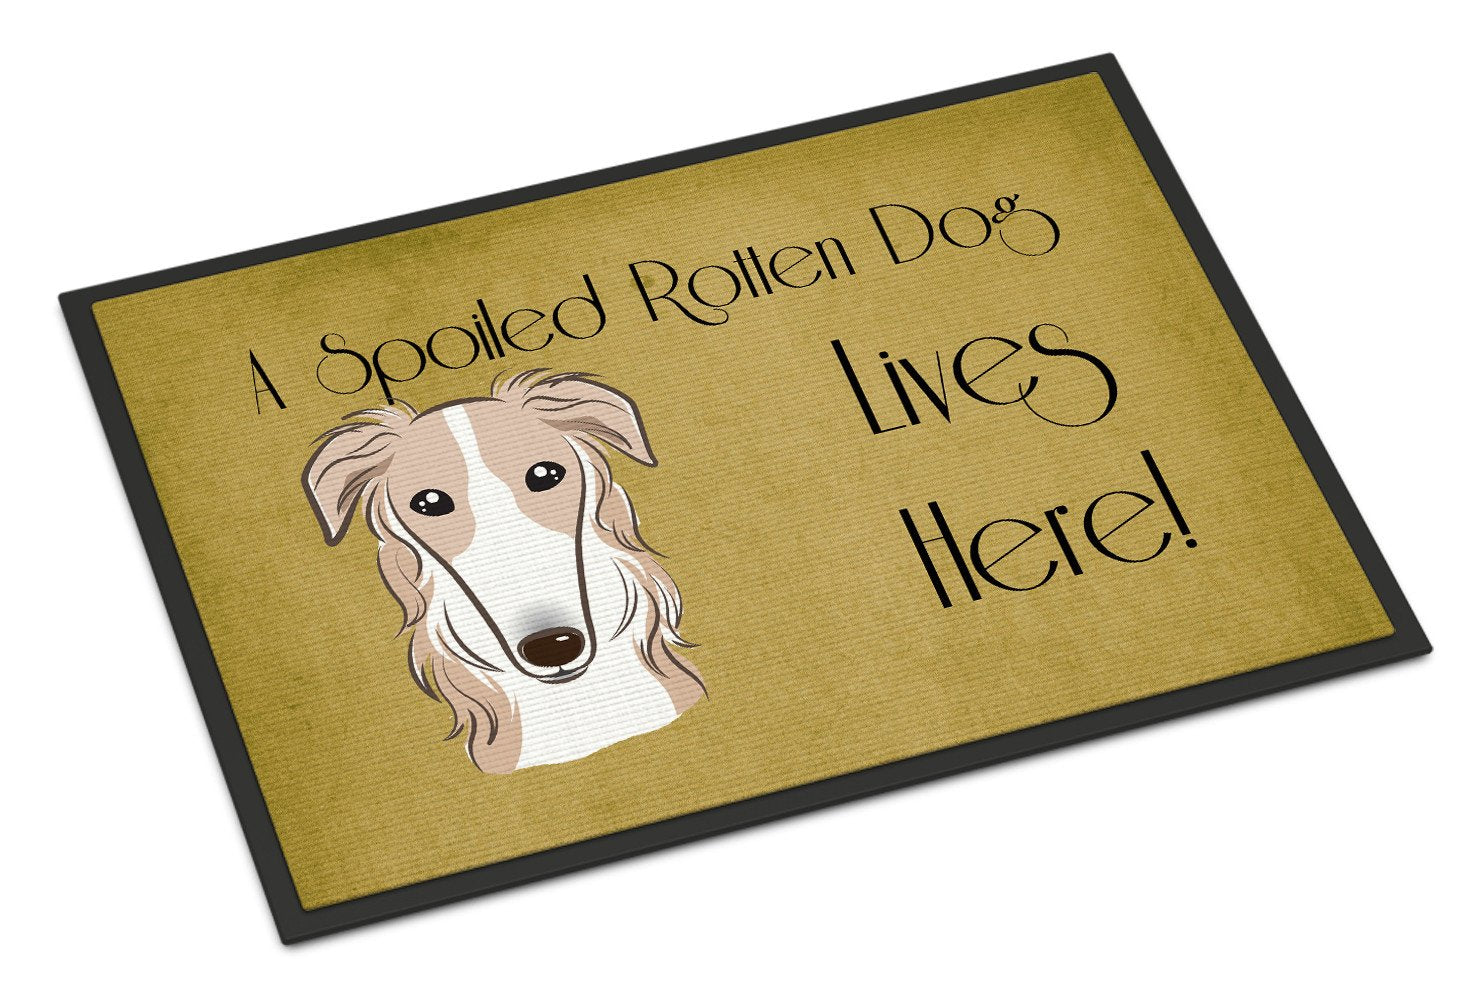 Borzoi Spoiled Dog Lives Here Indoor or Outdoor Mat 18x27 BB1476MAT - the-store.com